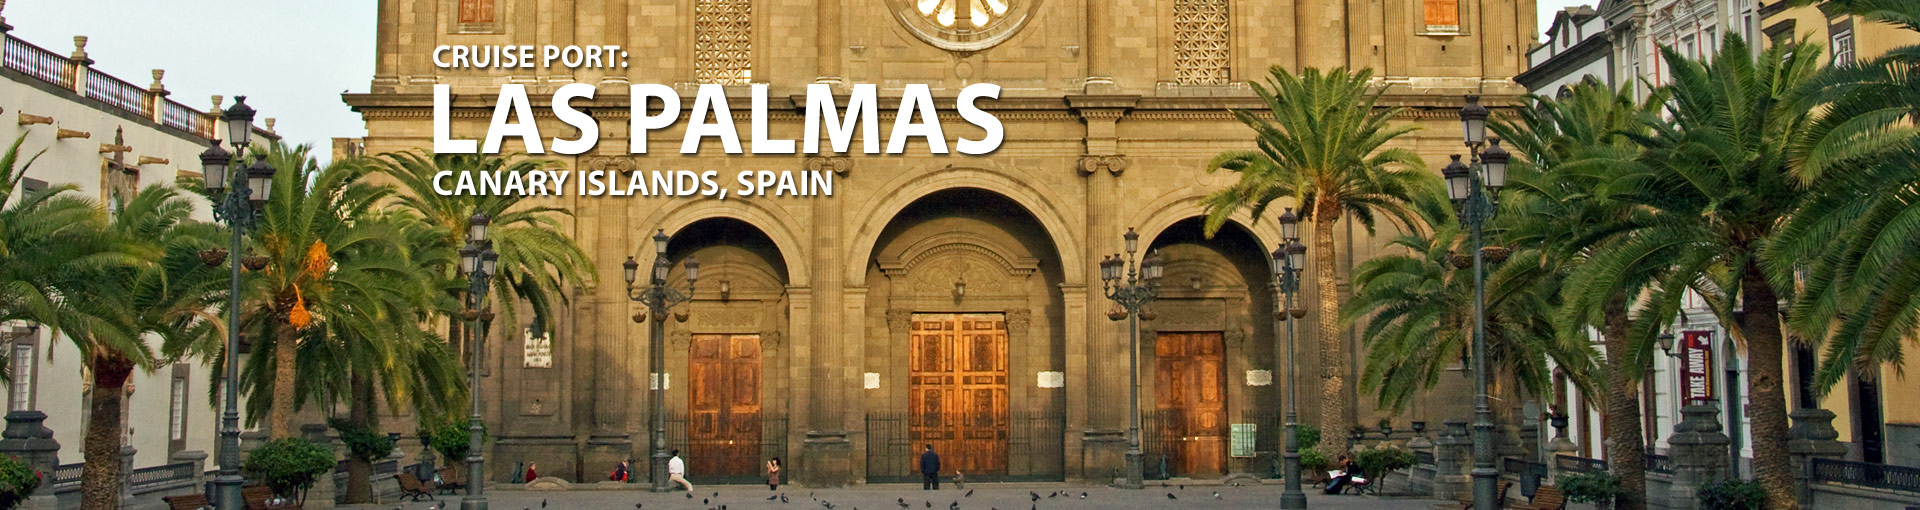 Cruises from Las Palmas, Canary Islands